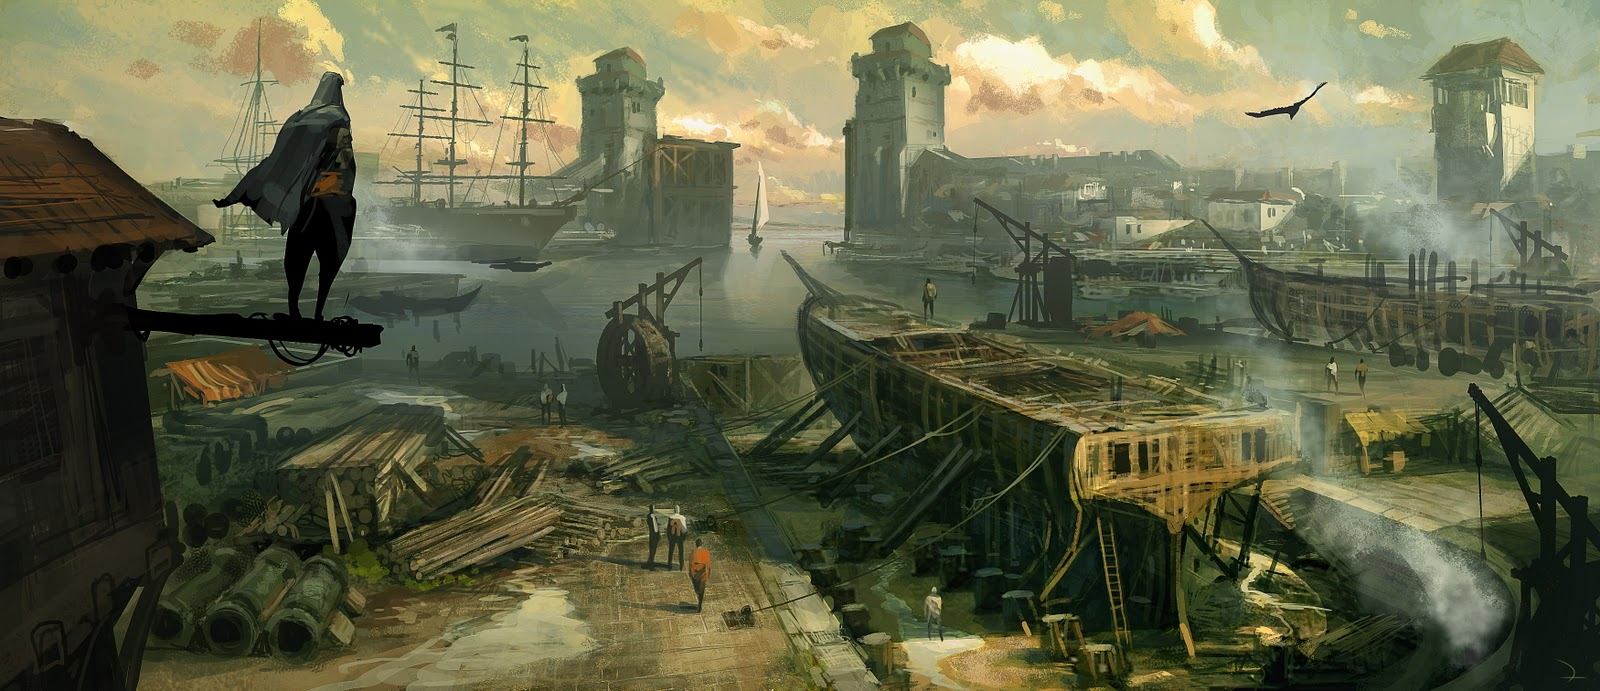 Concept Art de Assassin's Creed Revelations